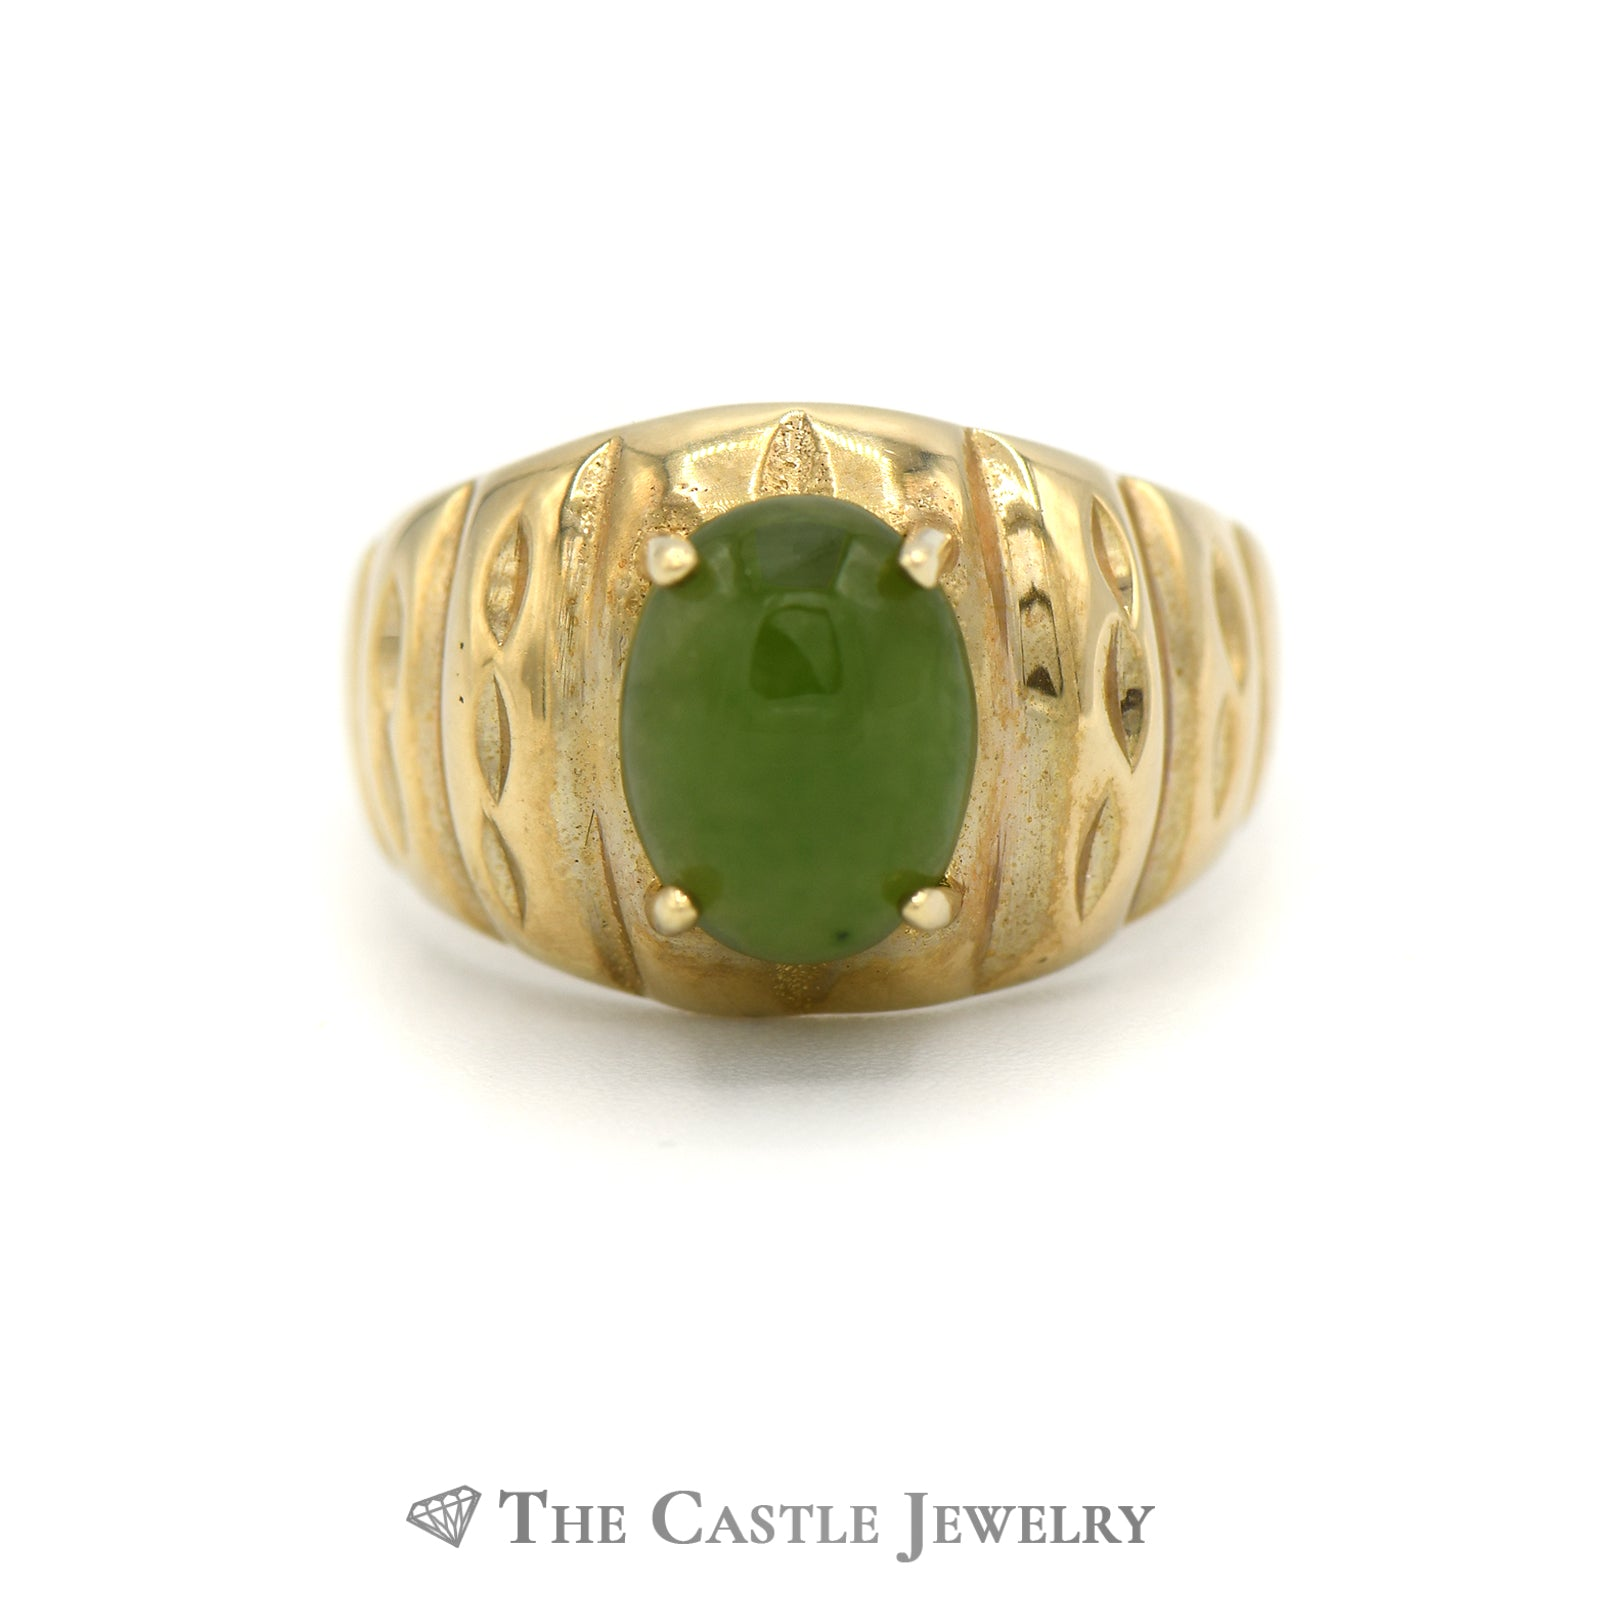 Oval Cabochon Jade Ring in 10k Yellow Gold